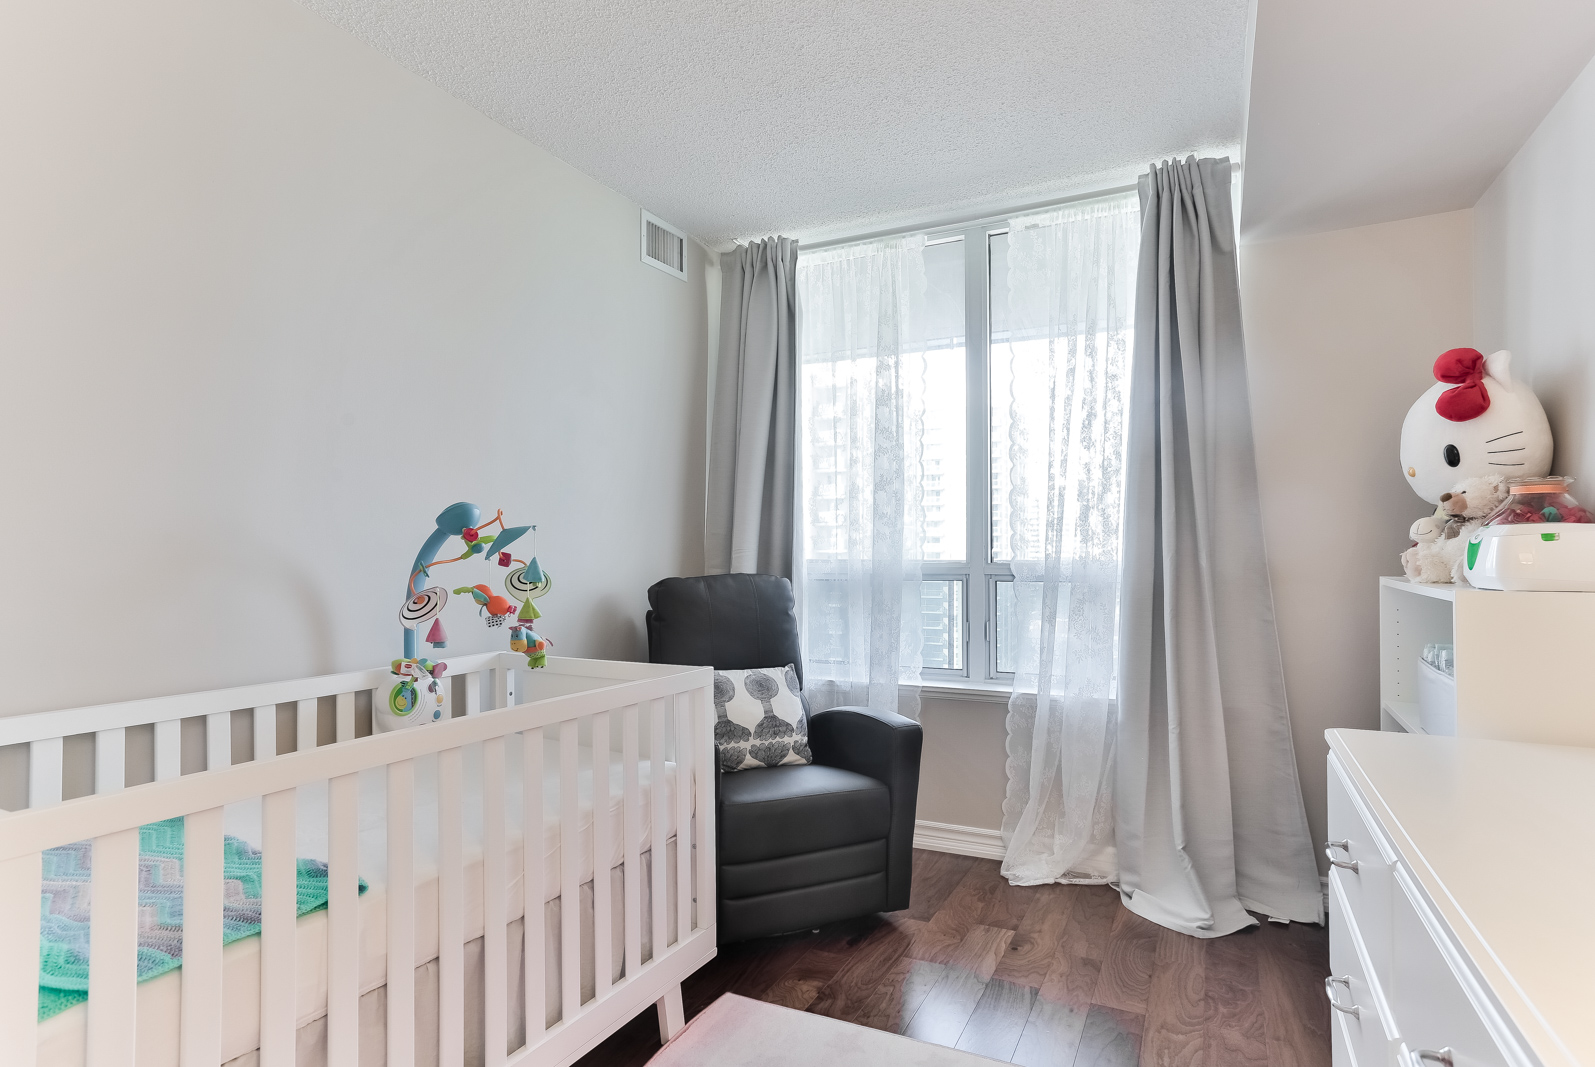 35 Finch Ave E, Unit 1212